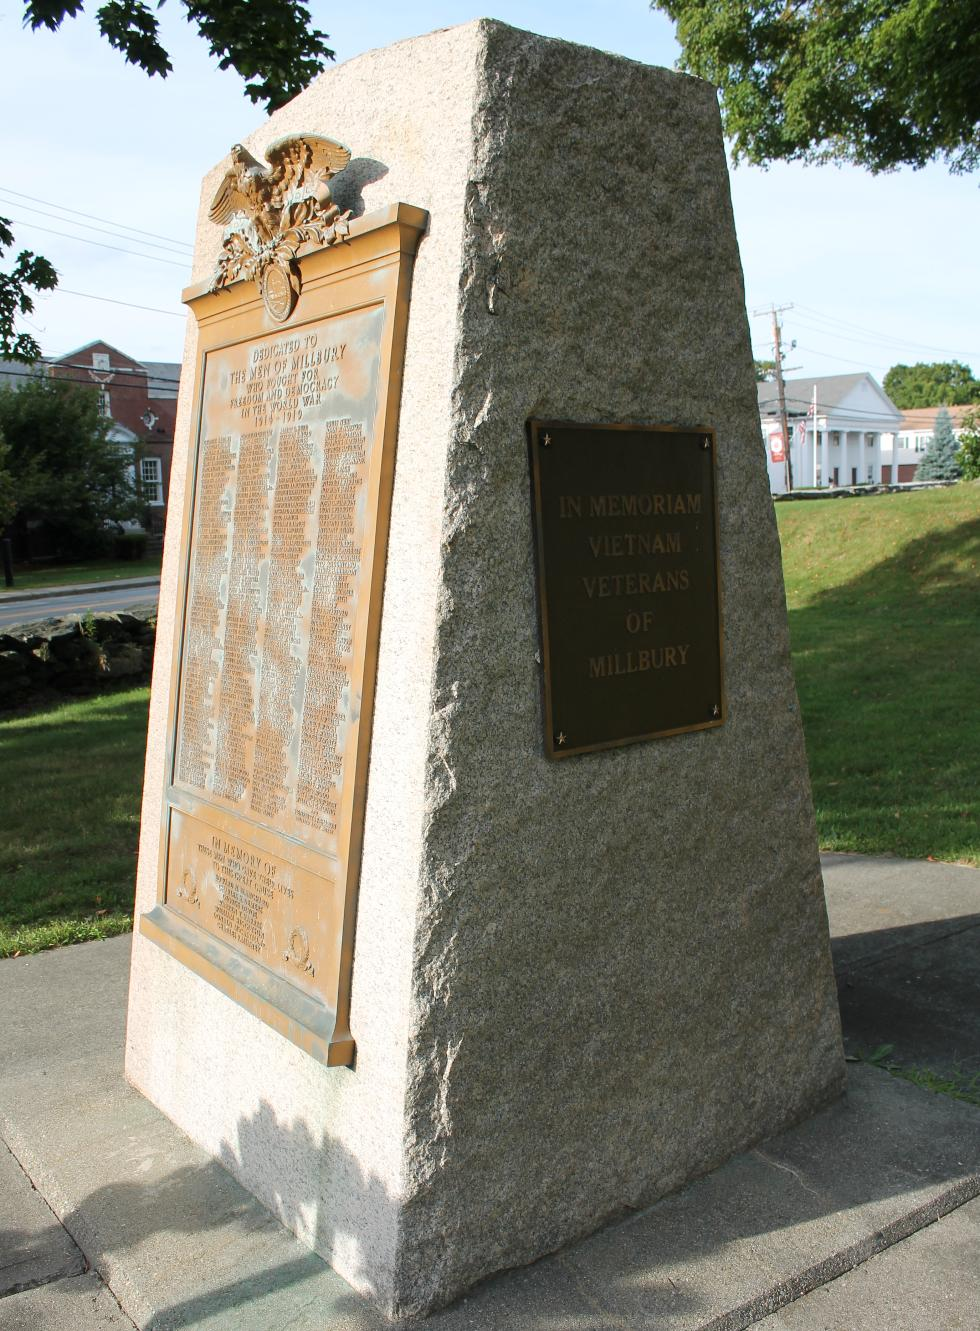 Millbury Massachusetts World War I Veterans Memorial